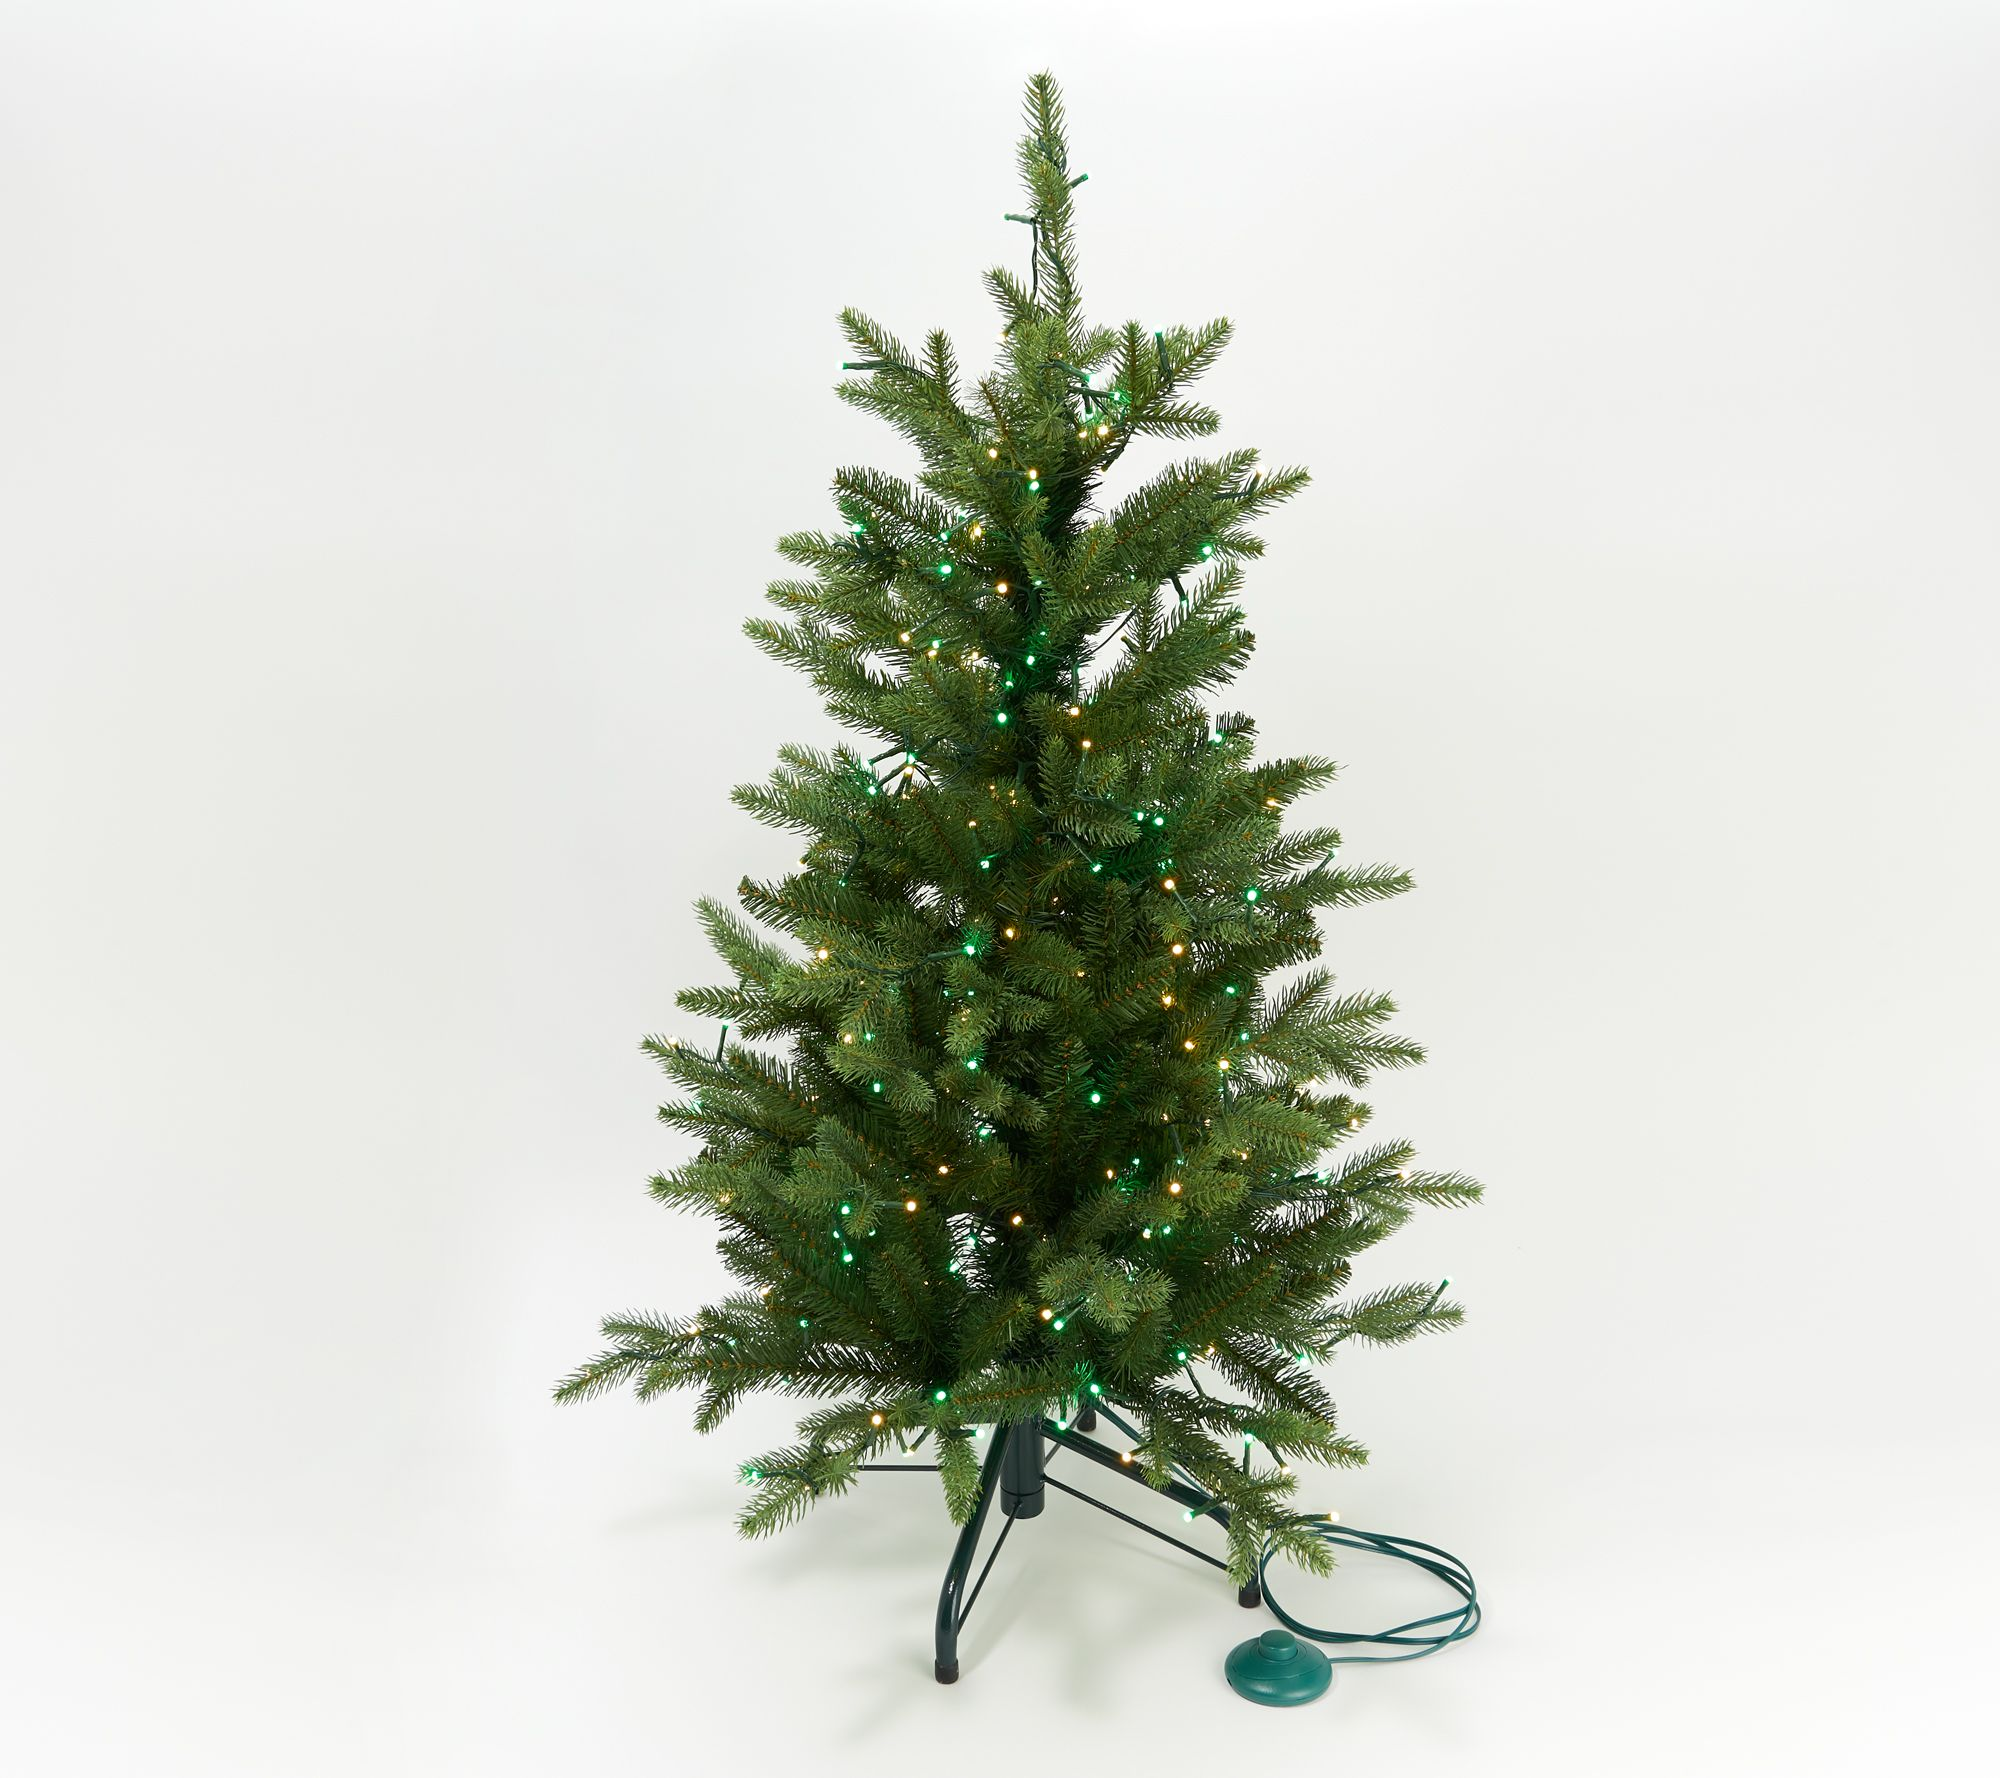 Santas Best Christmas Trees.Santa S Best 3 Alberta Spruce Starry Wrgb Christmas Tree Qvc Com